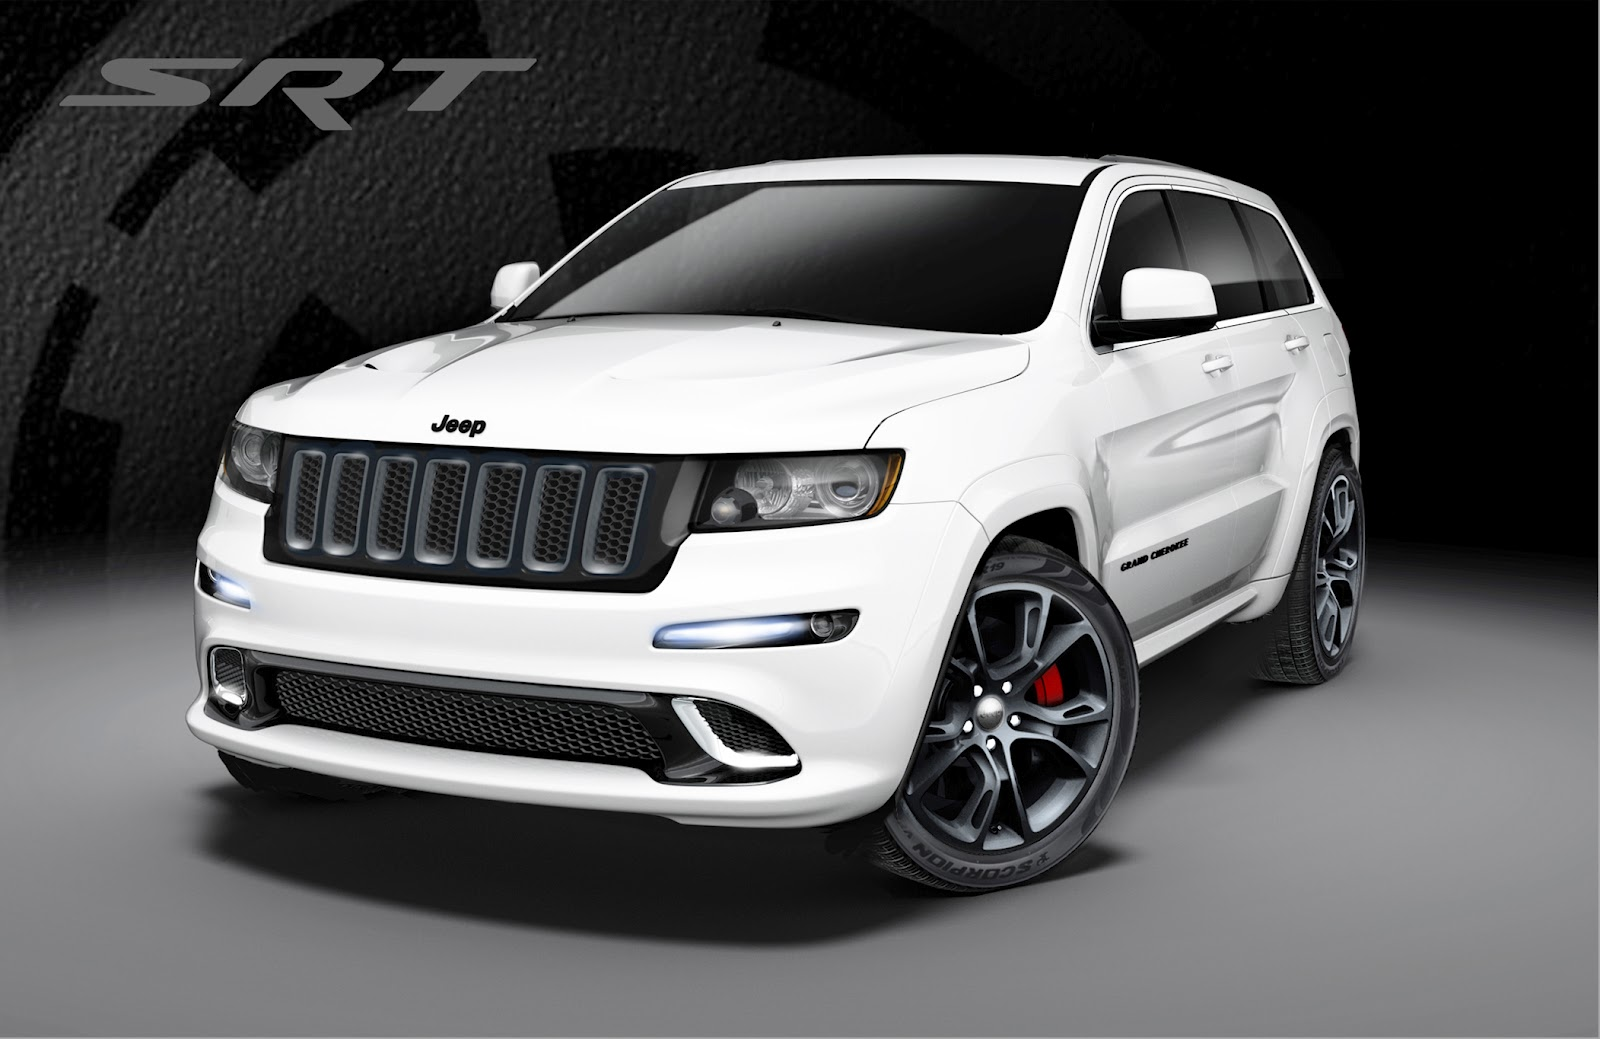 2010 - [Jeep] Grand Cherokee - Page 3 2013+Jeep+Grand+Cherokee+SRT8+white+alpine